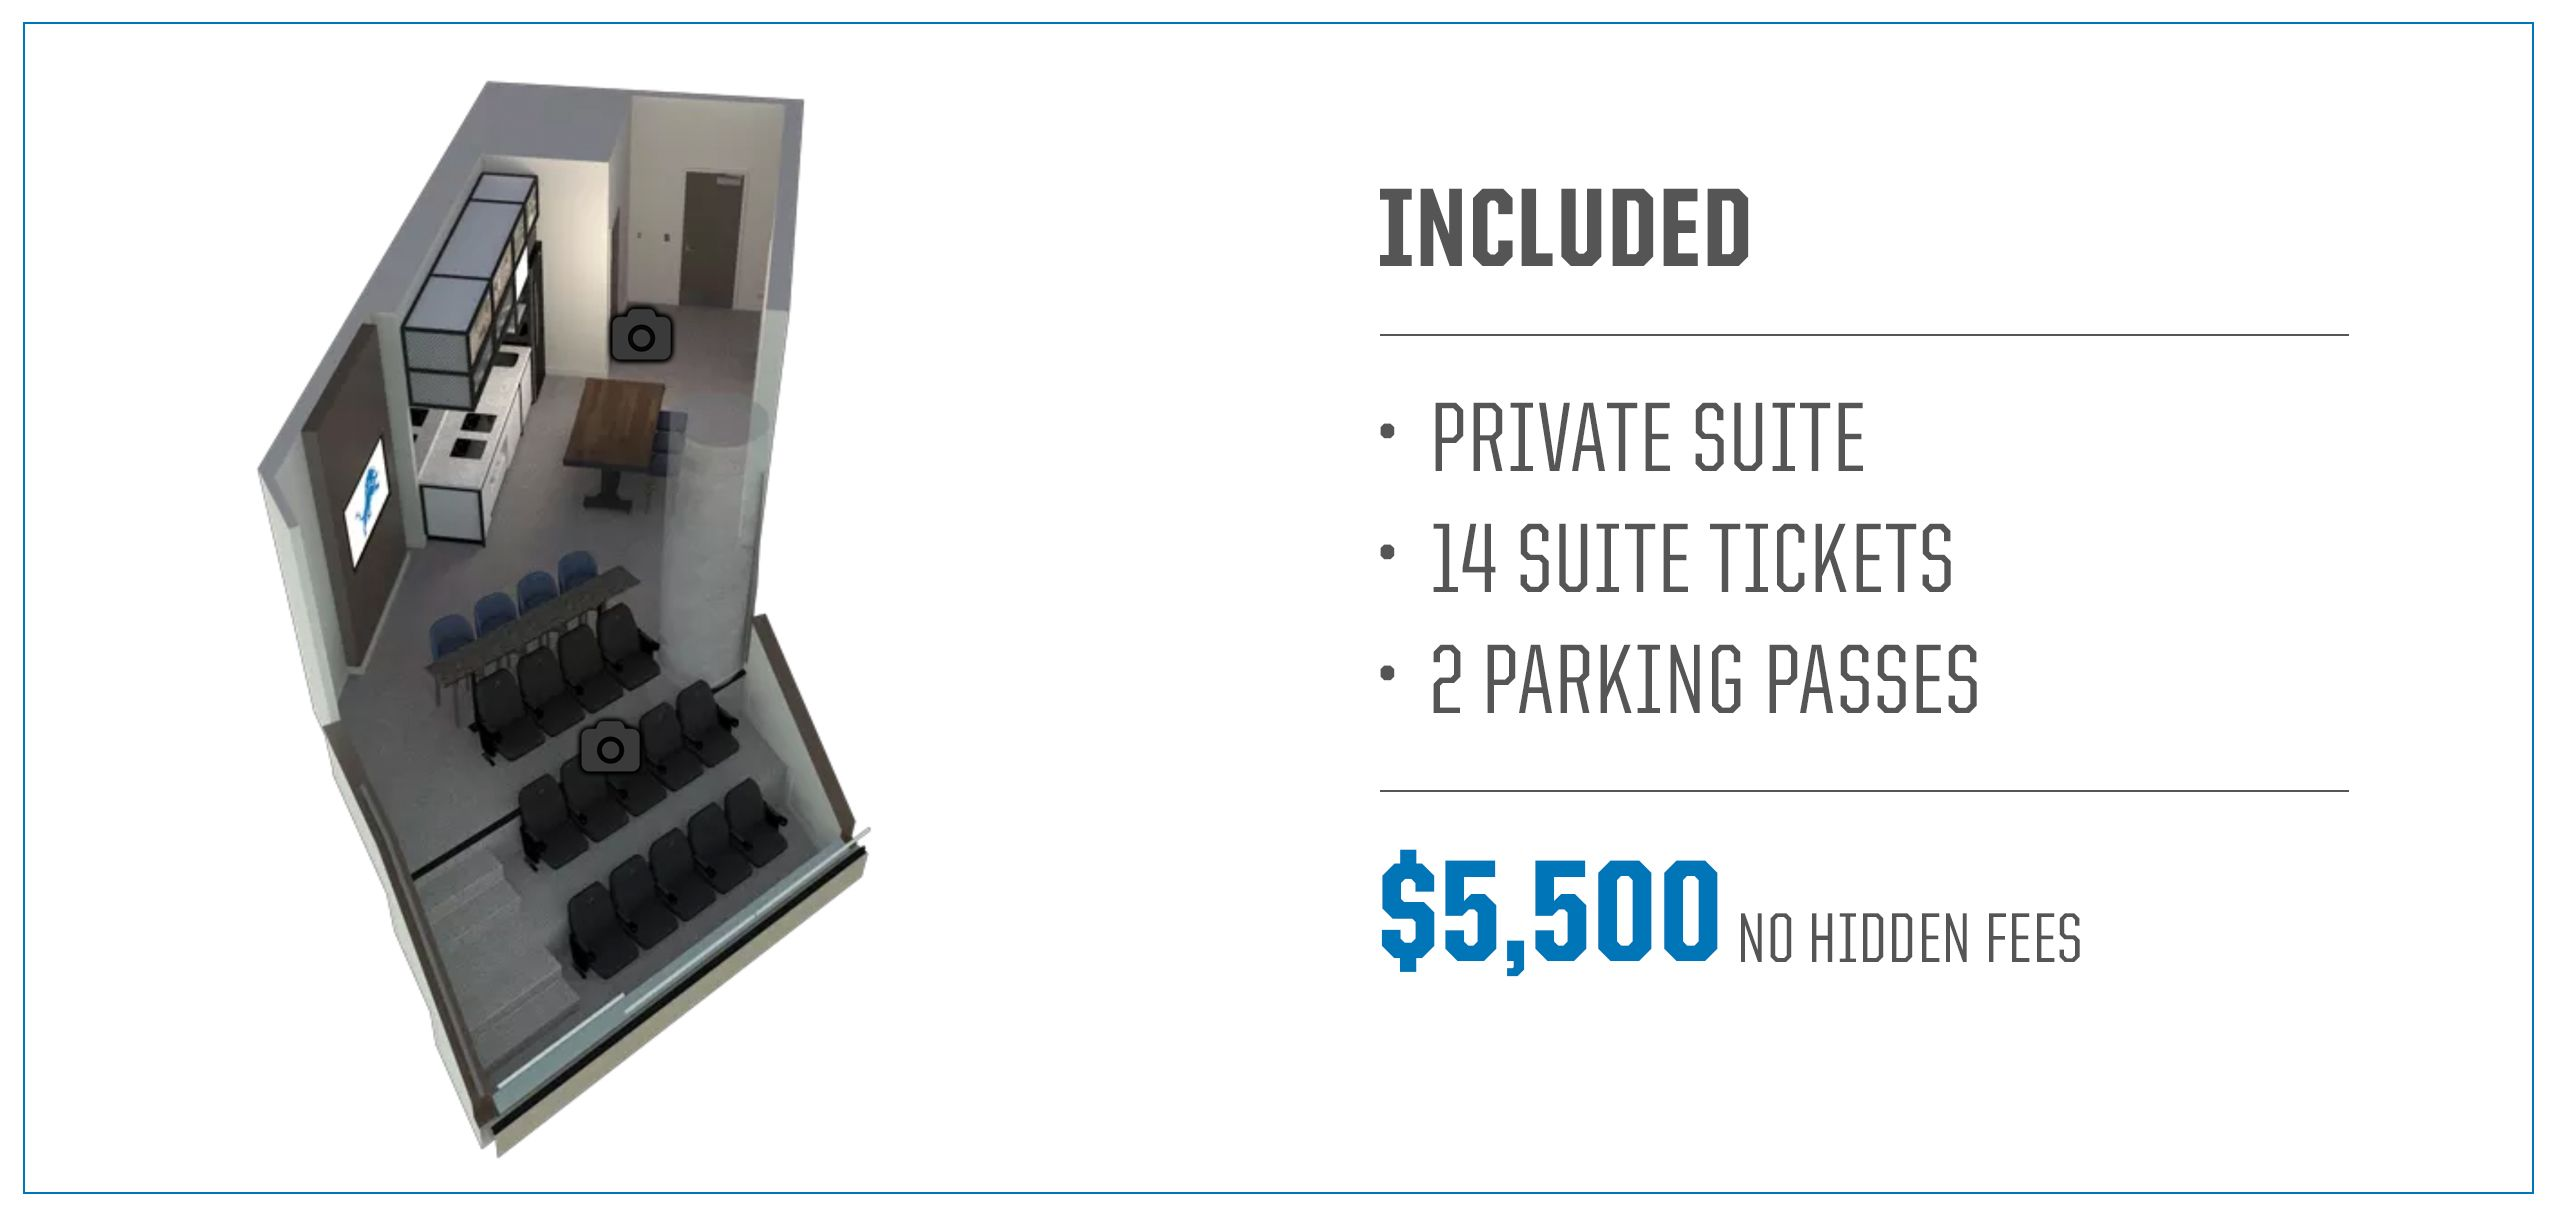 suite-purchase-information-map-431-information